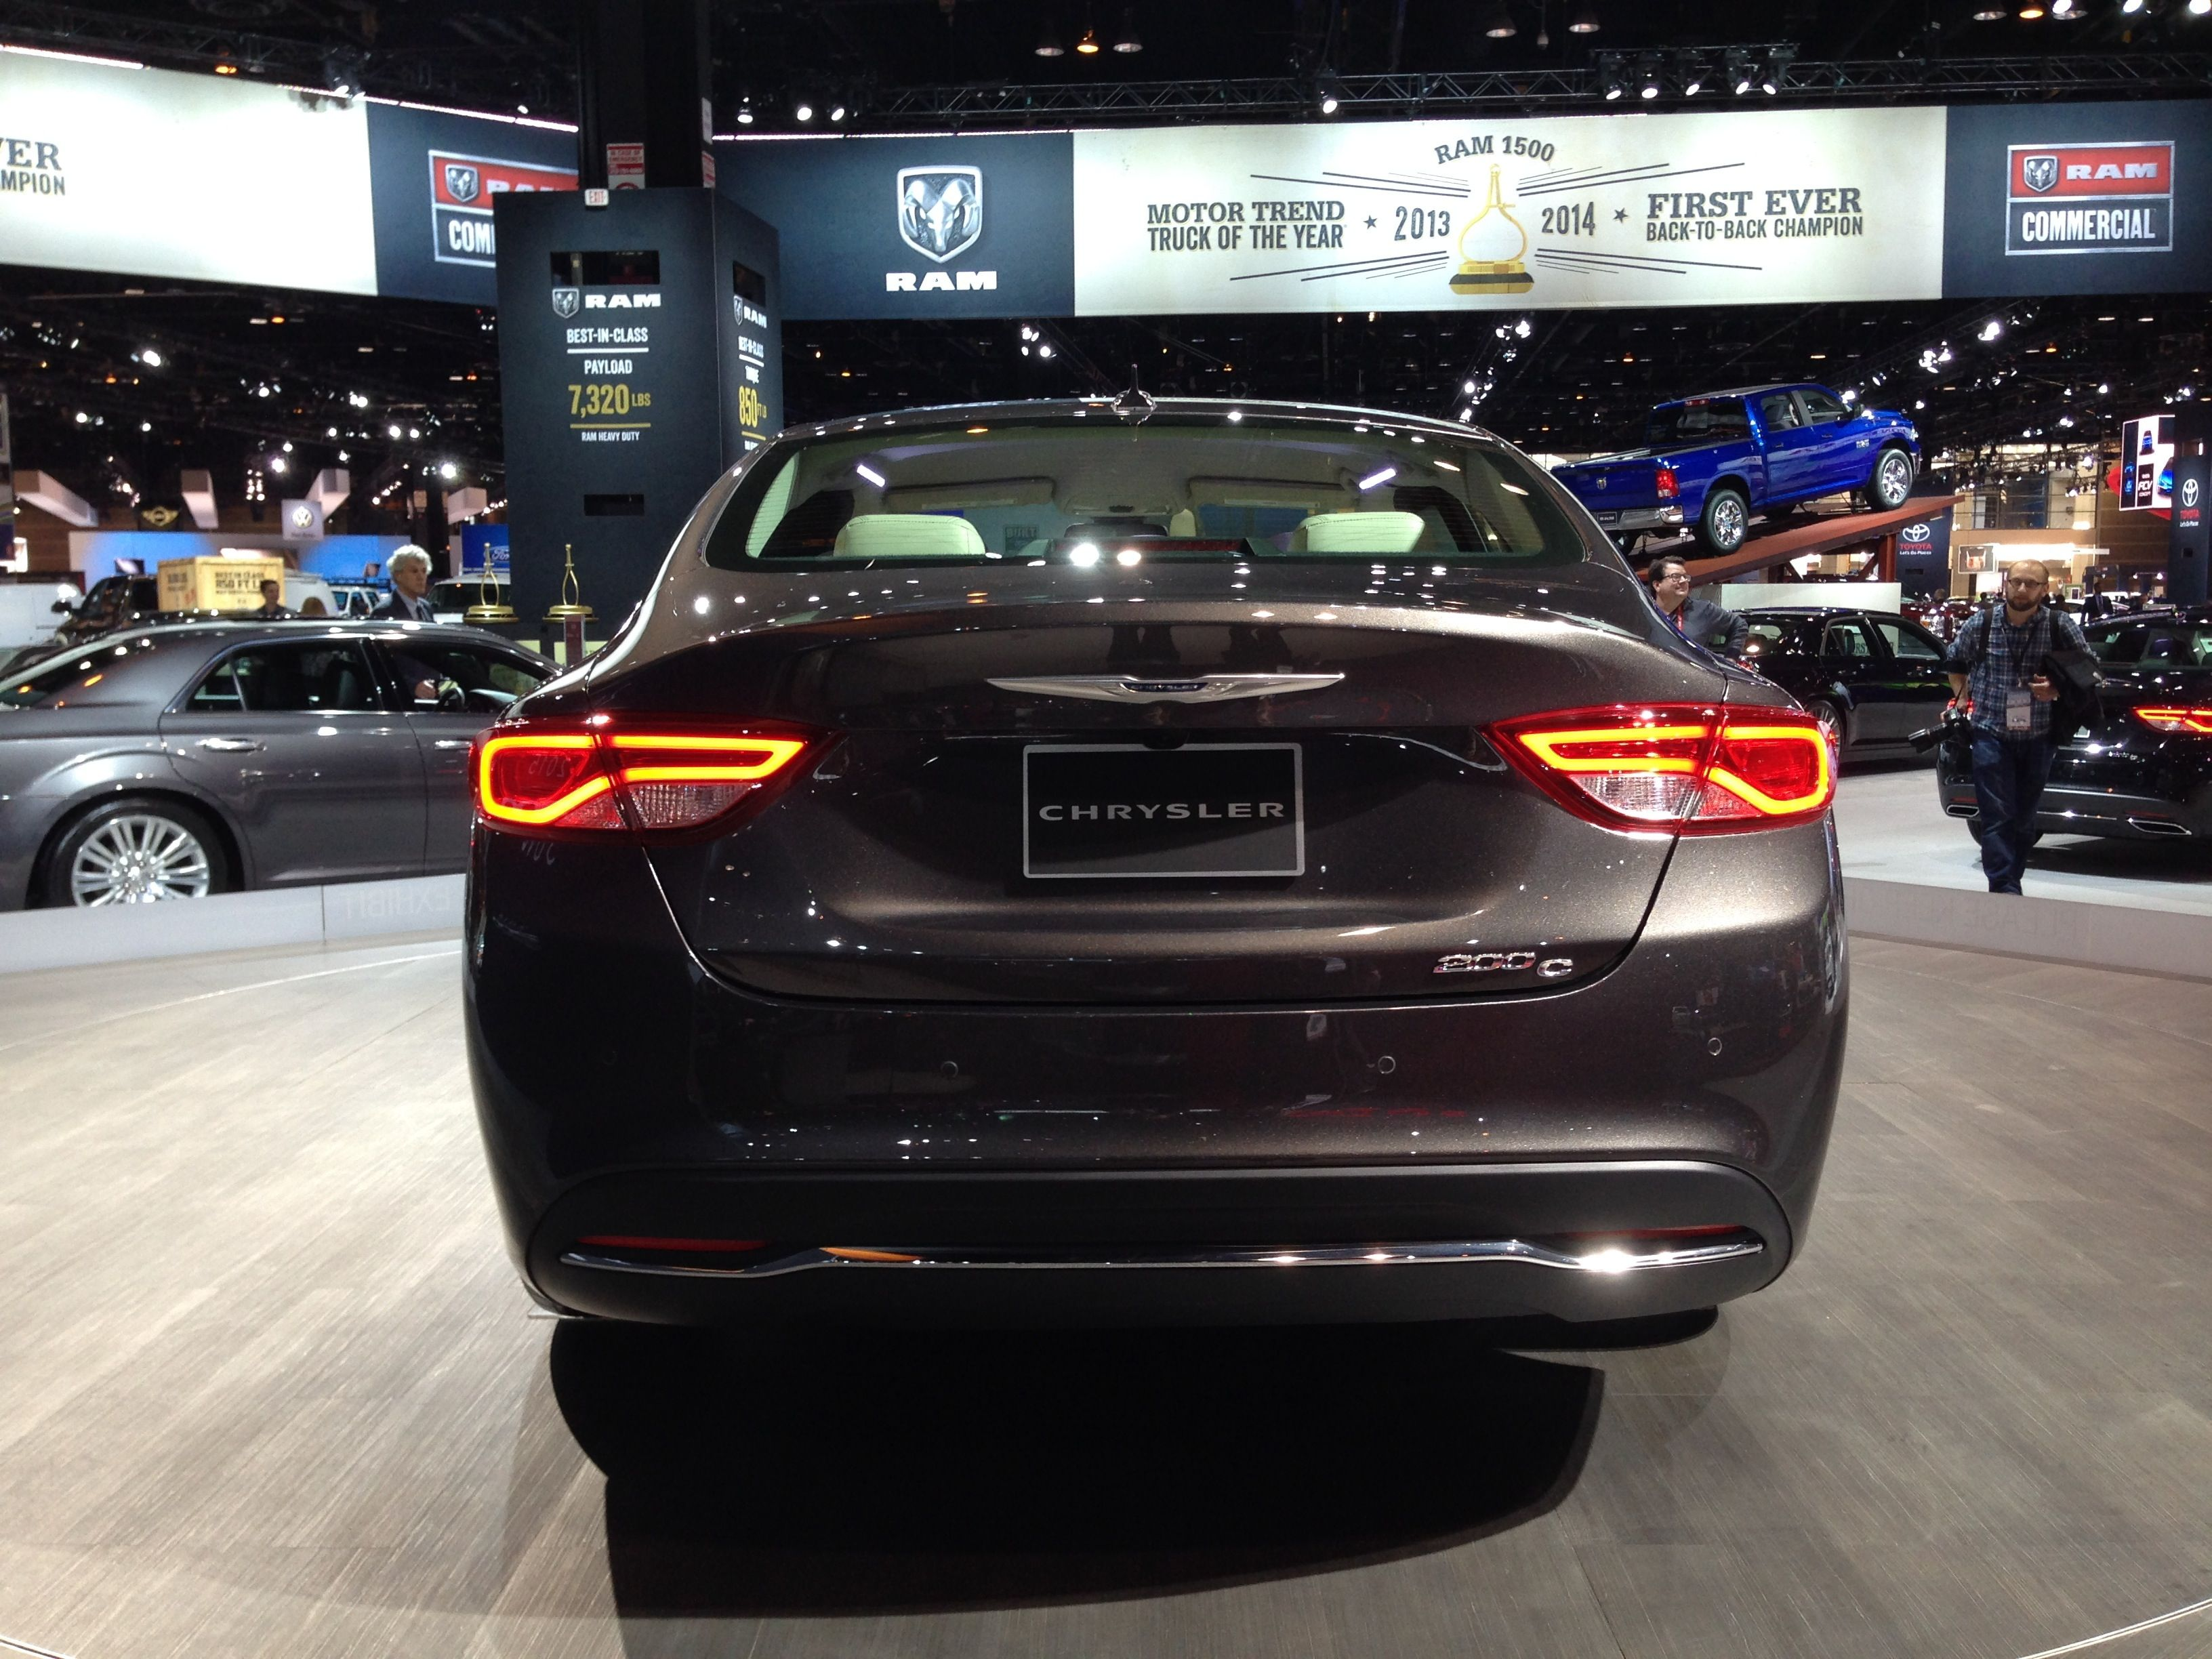 The all new 2015 chrysler 200 in vivid blue pearl at the chicago auto show 2015 chrysler 200 pinterest chrysler 200